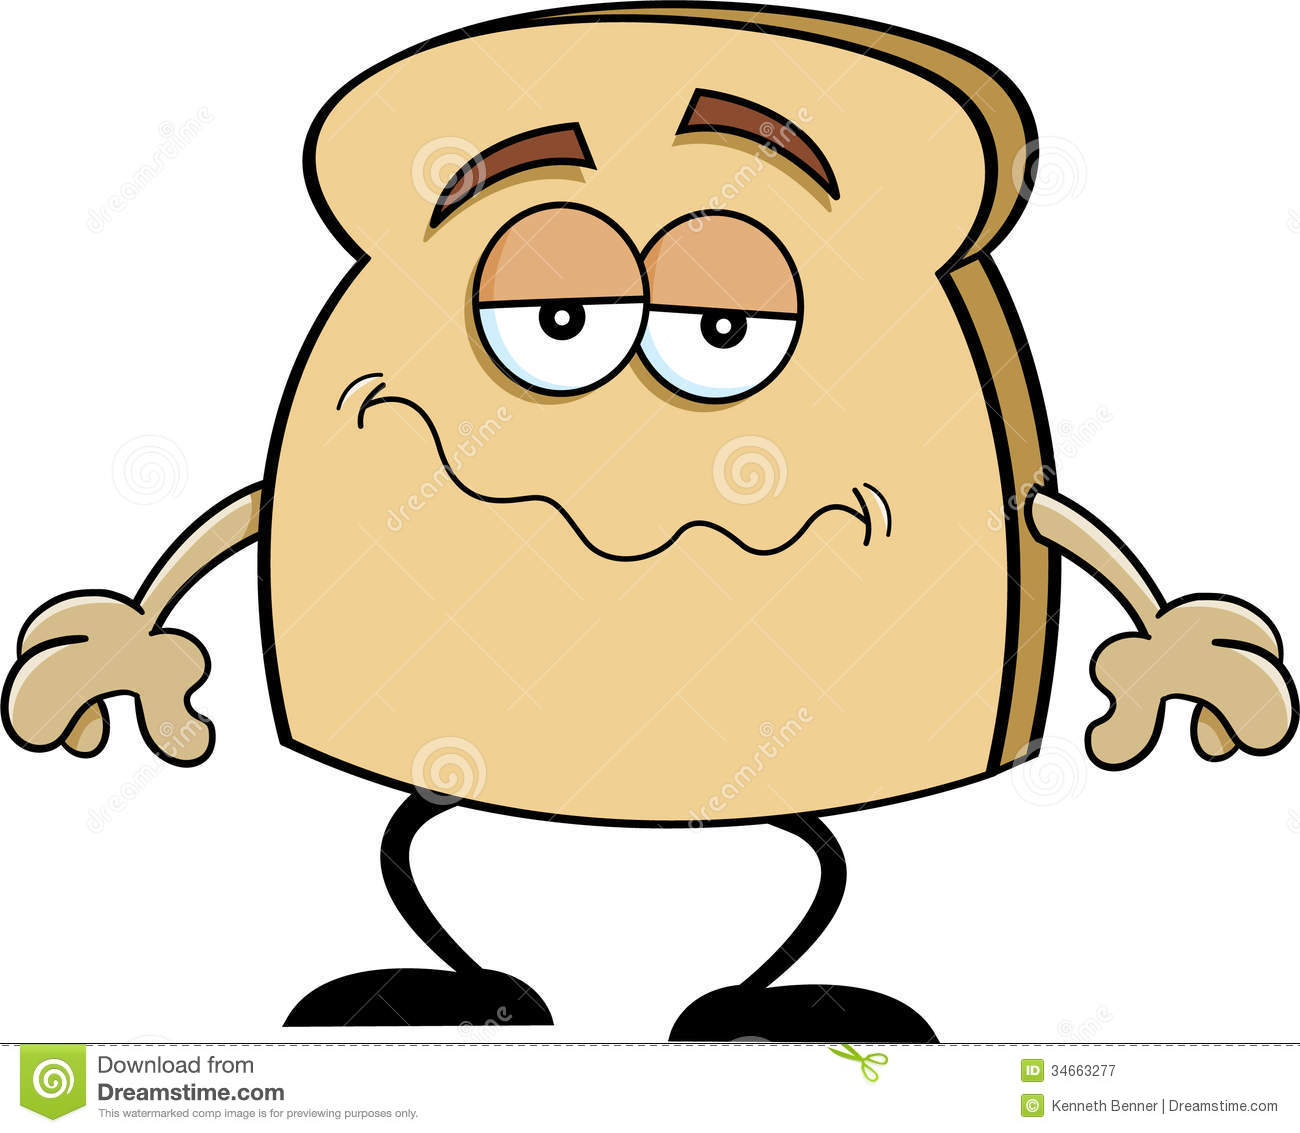 Bread clipart character. Toast free on dumielauxepices